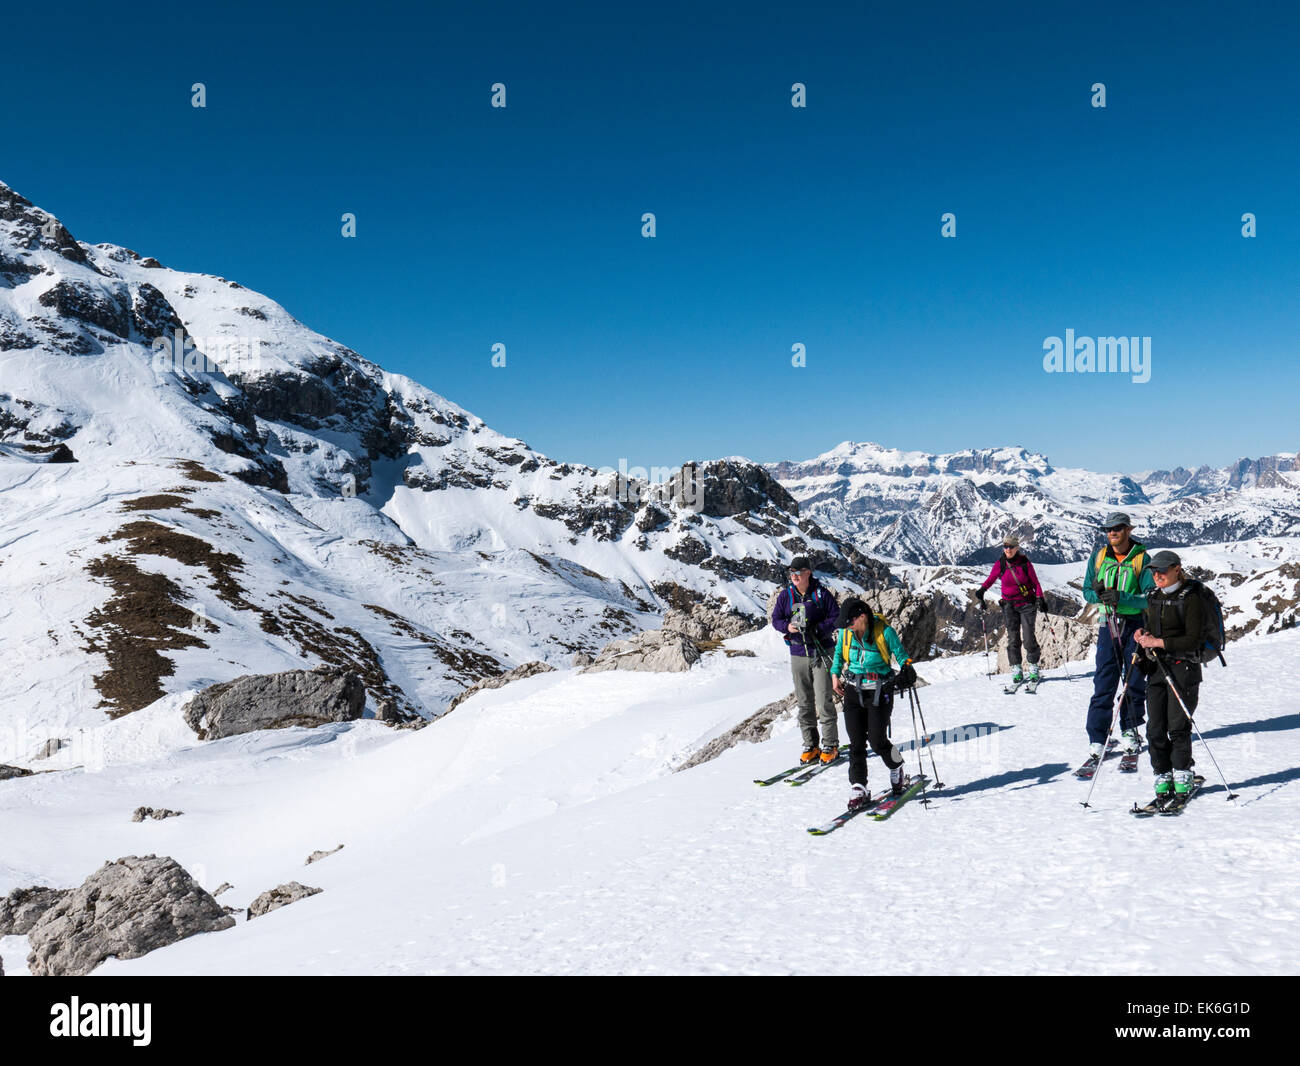 Backcountry skiers, Mondeval, Dolomite Mountains, Alps, Italy - Stock Image